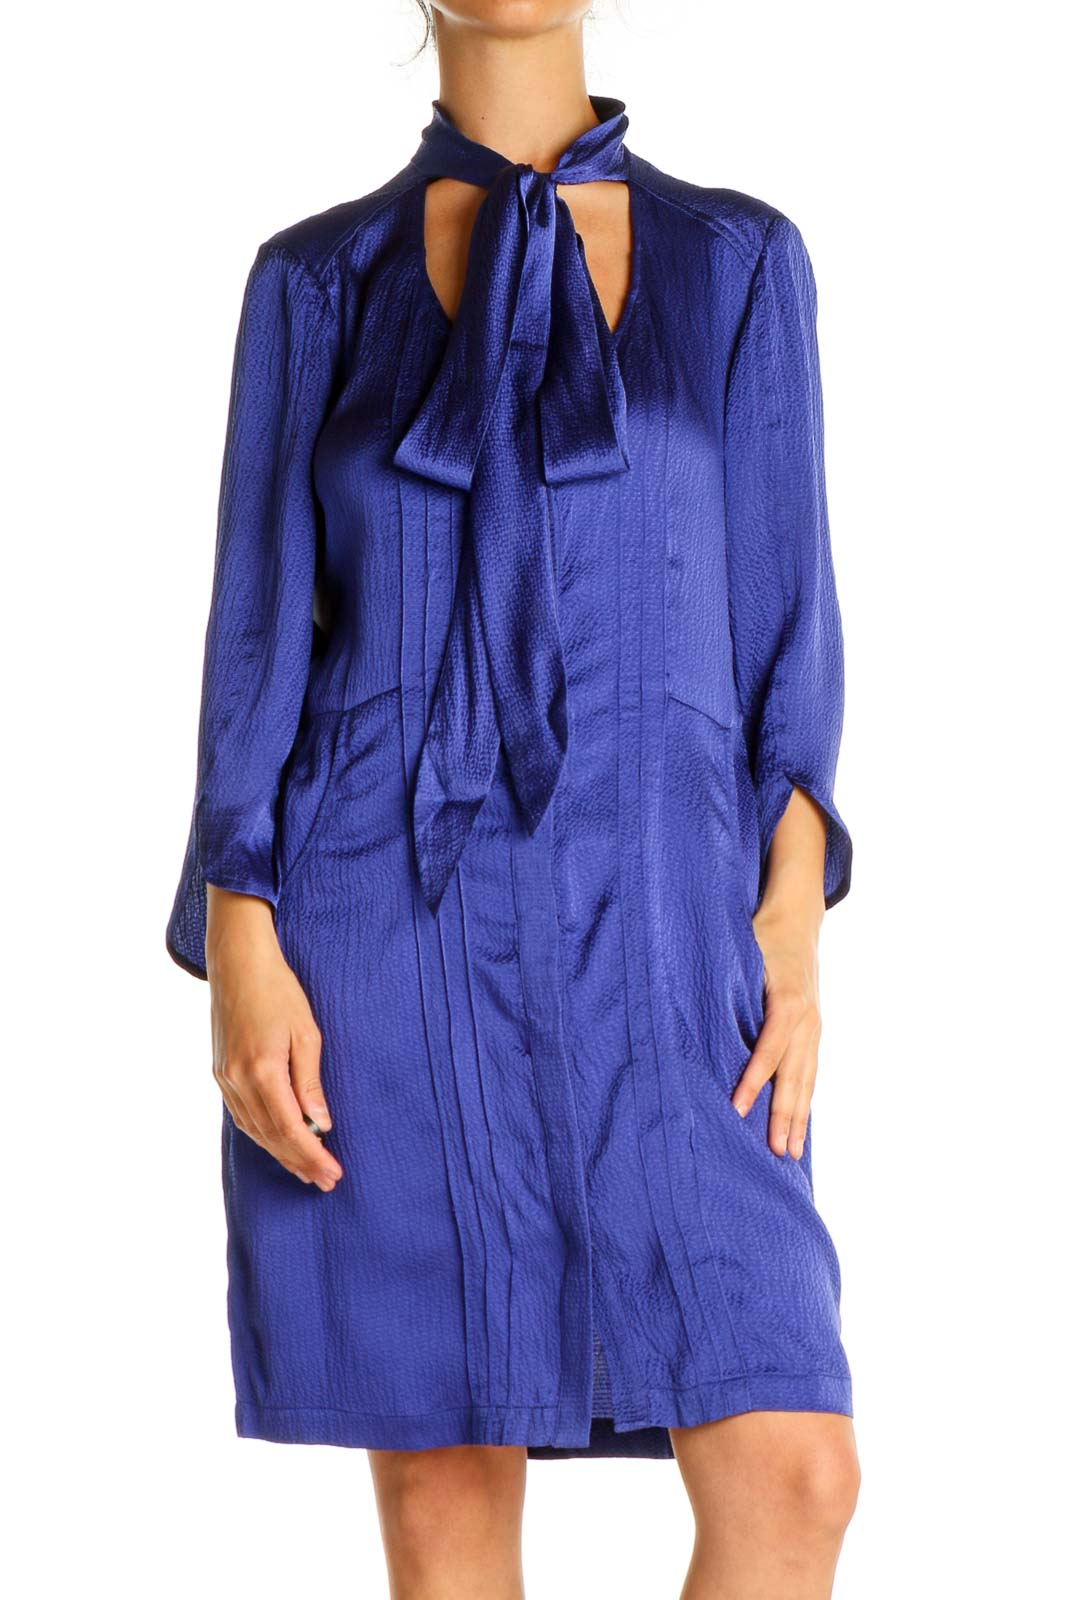 Blue Solid Chic Shift Dress Front